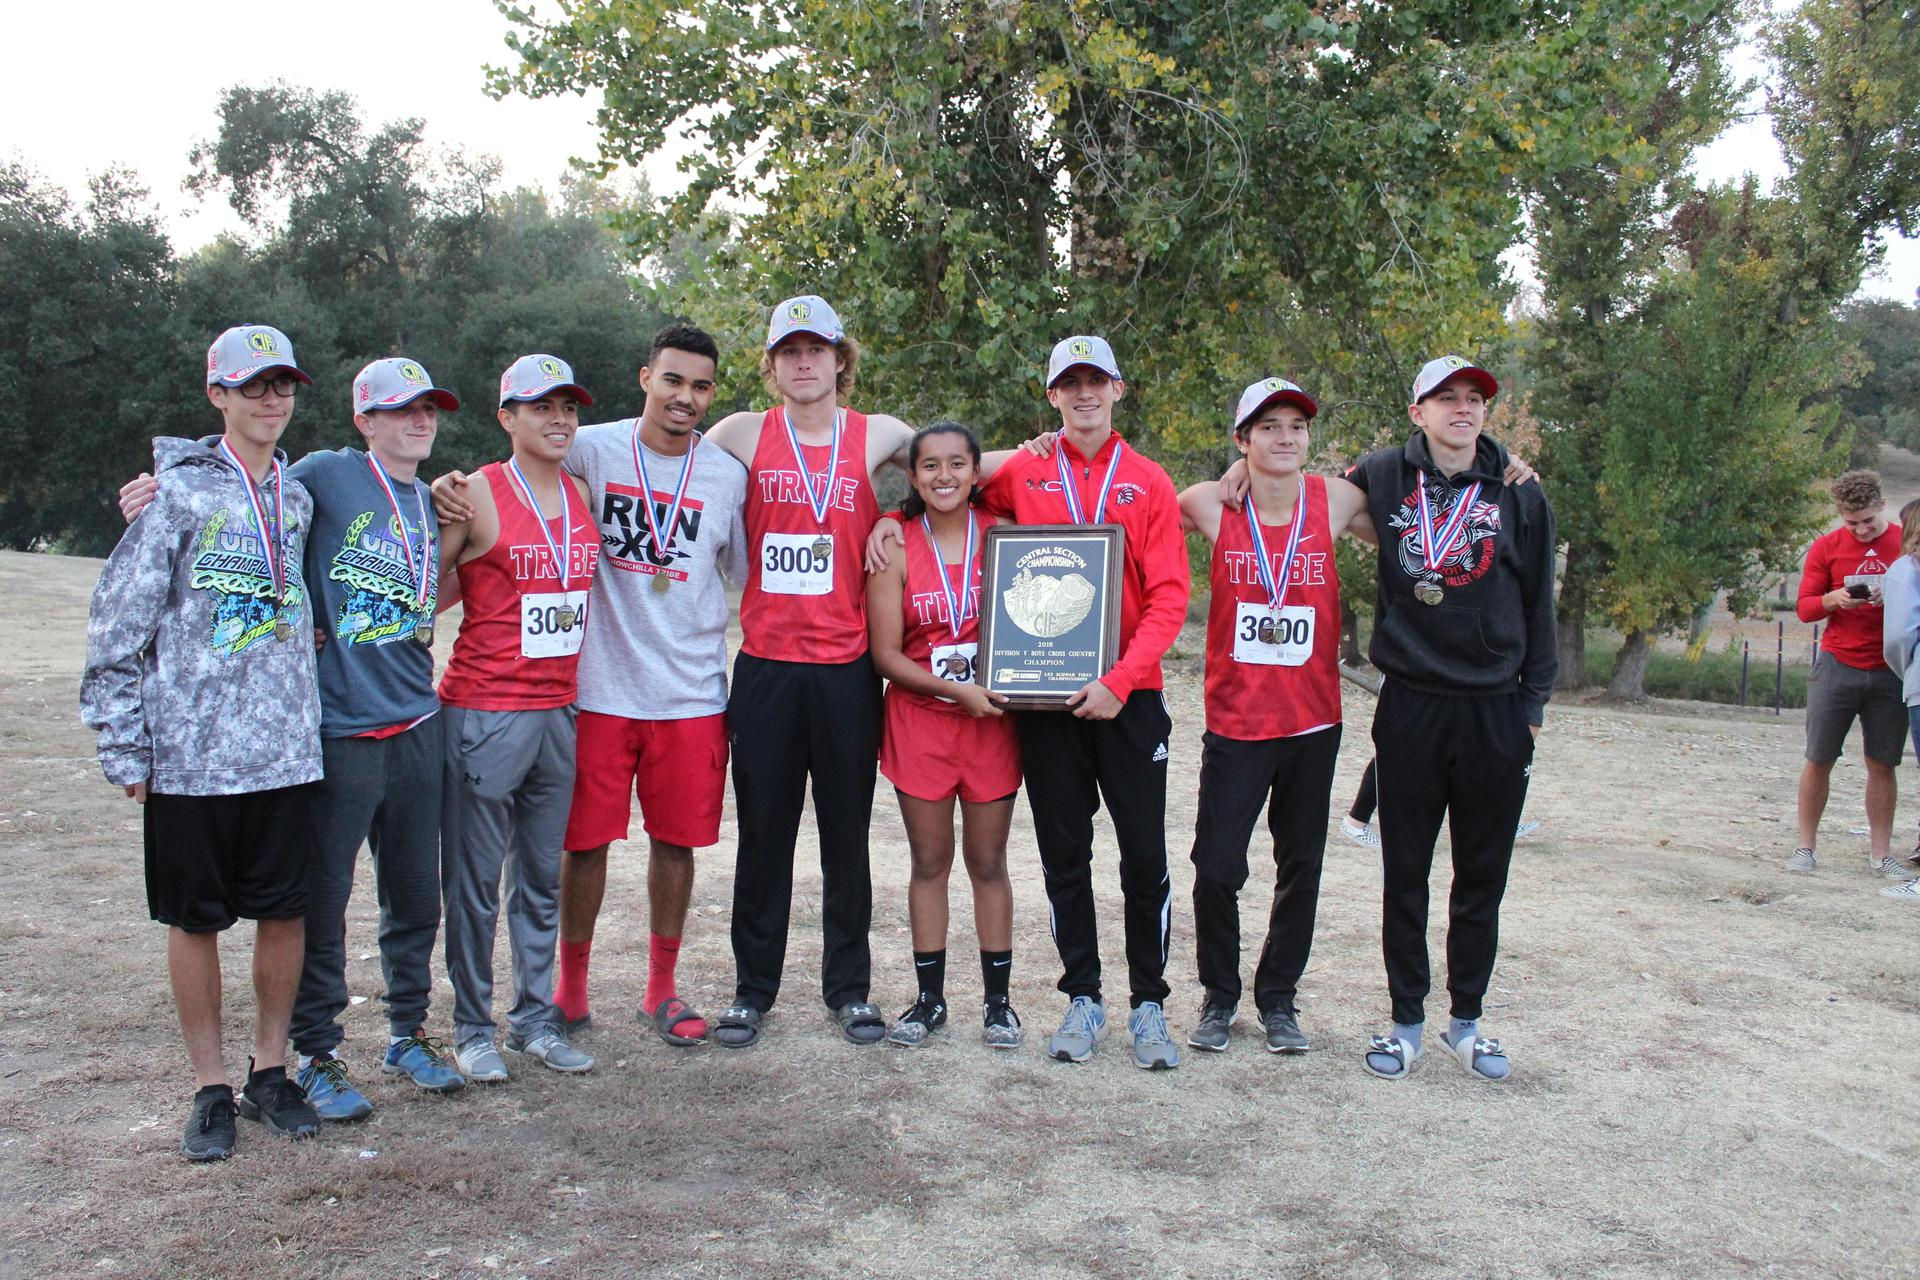 CUHS runners and coaches posing with the trophy.